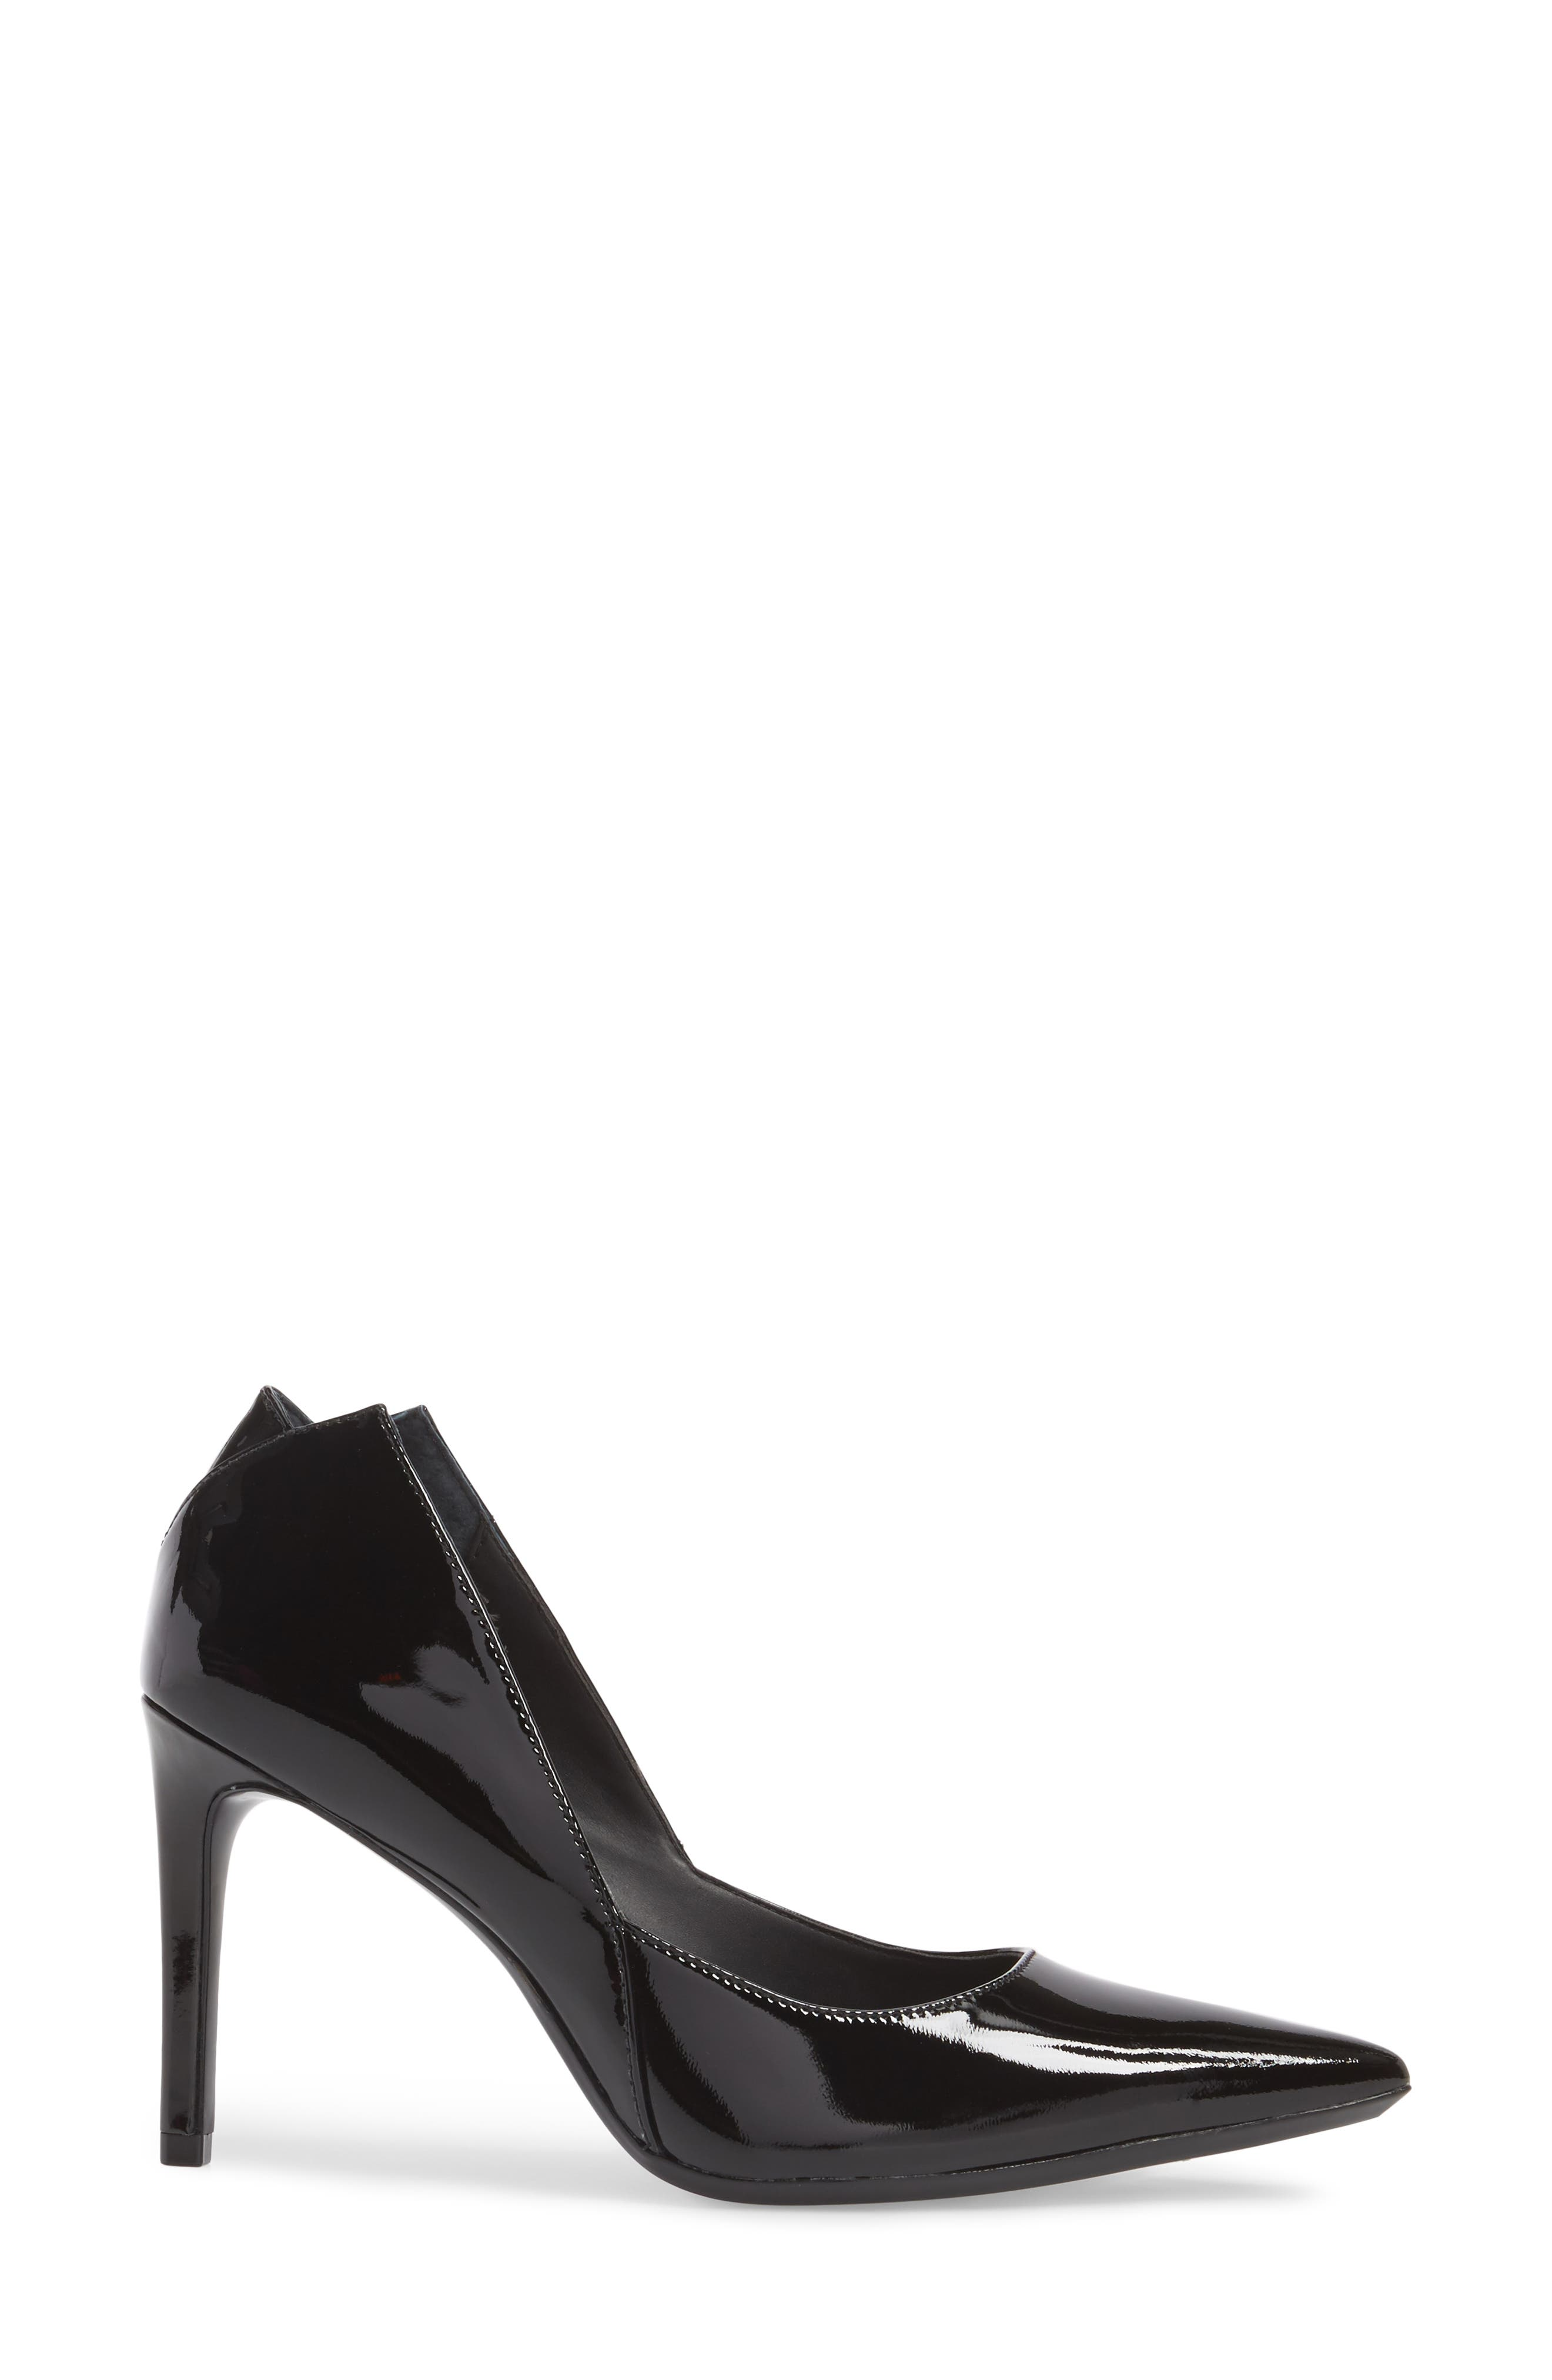 Randa Pointy Toe Pump,                             Alternate thumbnail 3, color,                             Black Leather